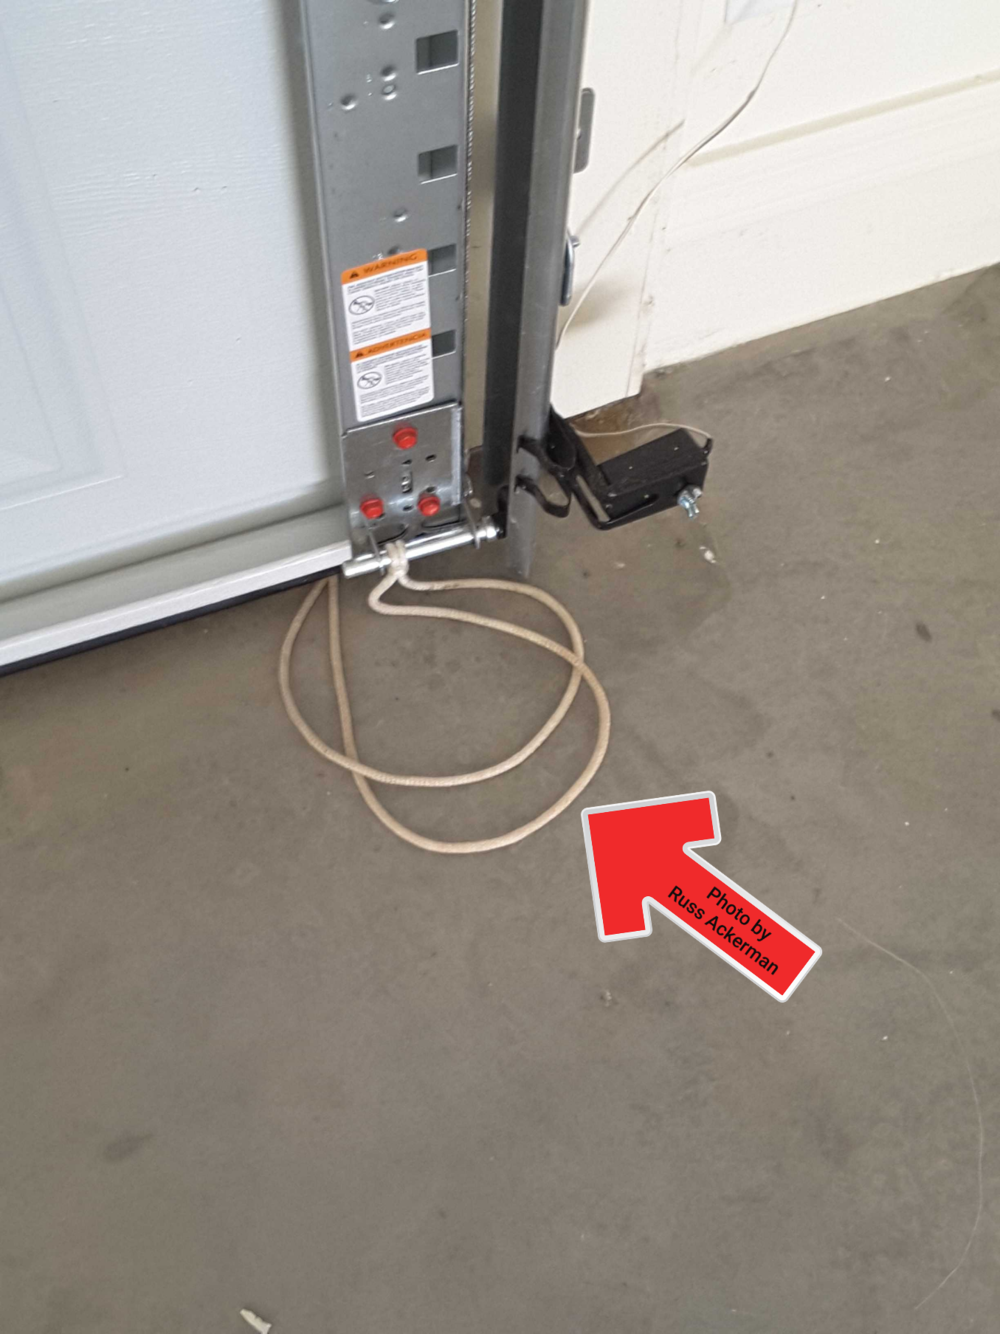 Overhead garage door pull strings will interfere with electric eyes preventing door from closing property.